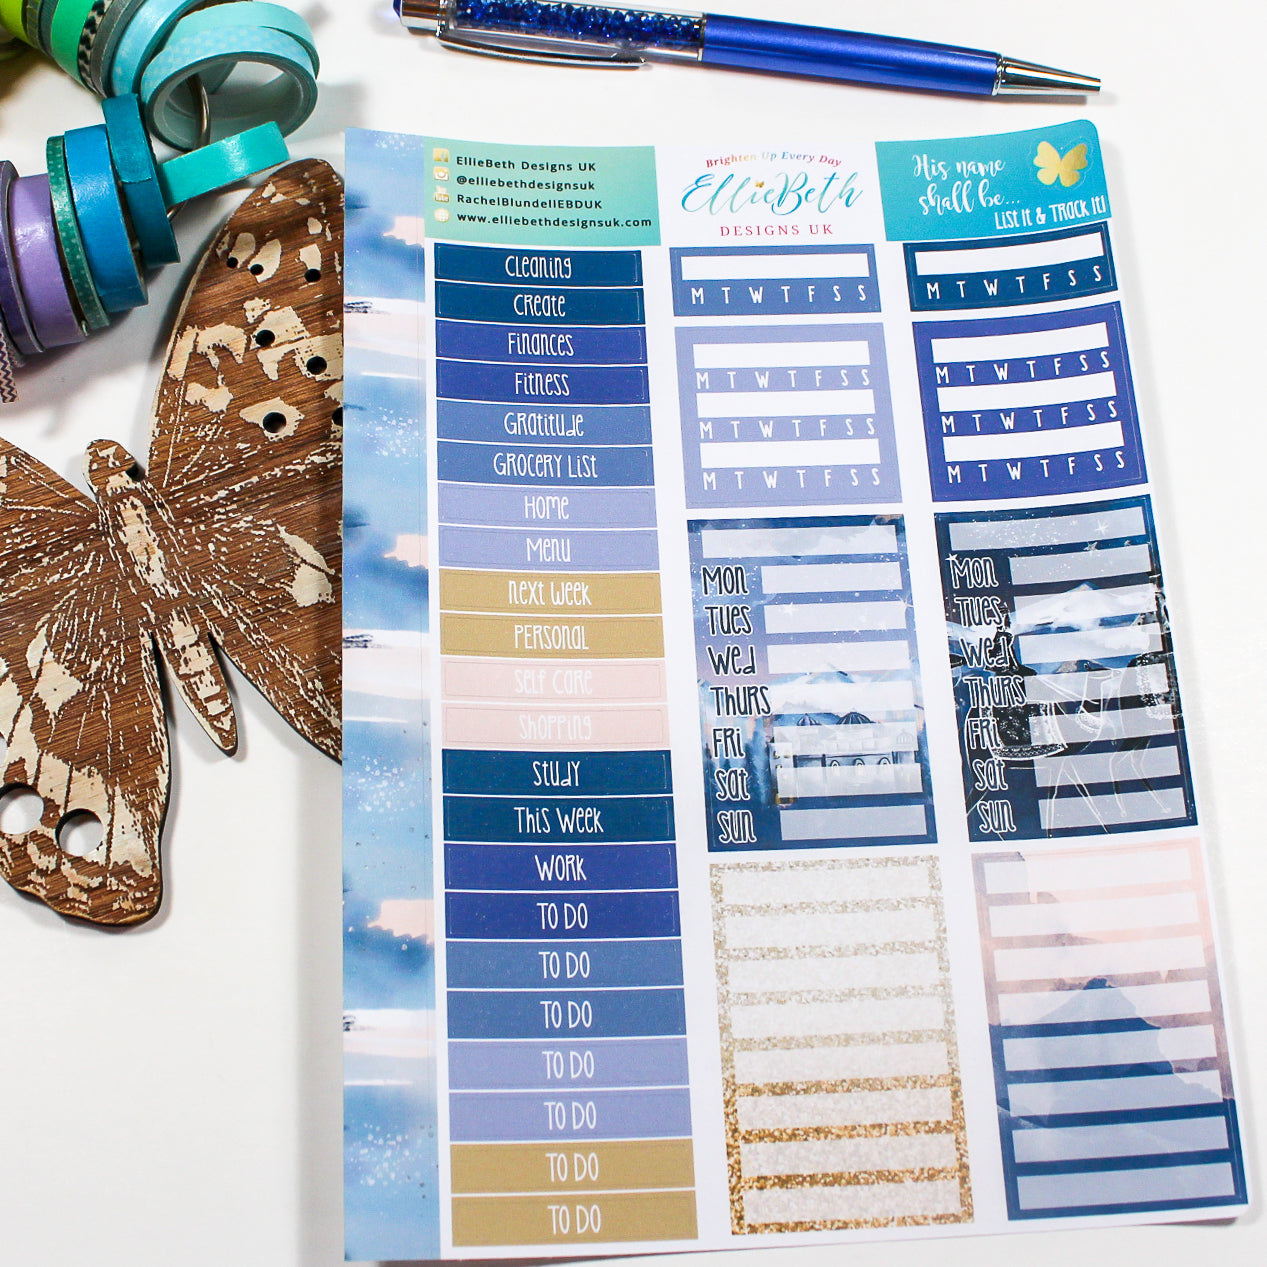 'His Name Shall Be' - List It & Track It -  A5 binder ready planner stickers